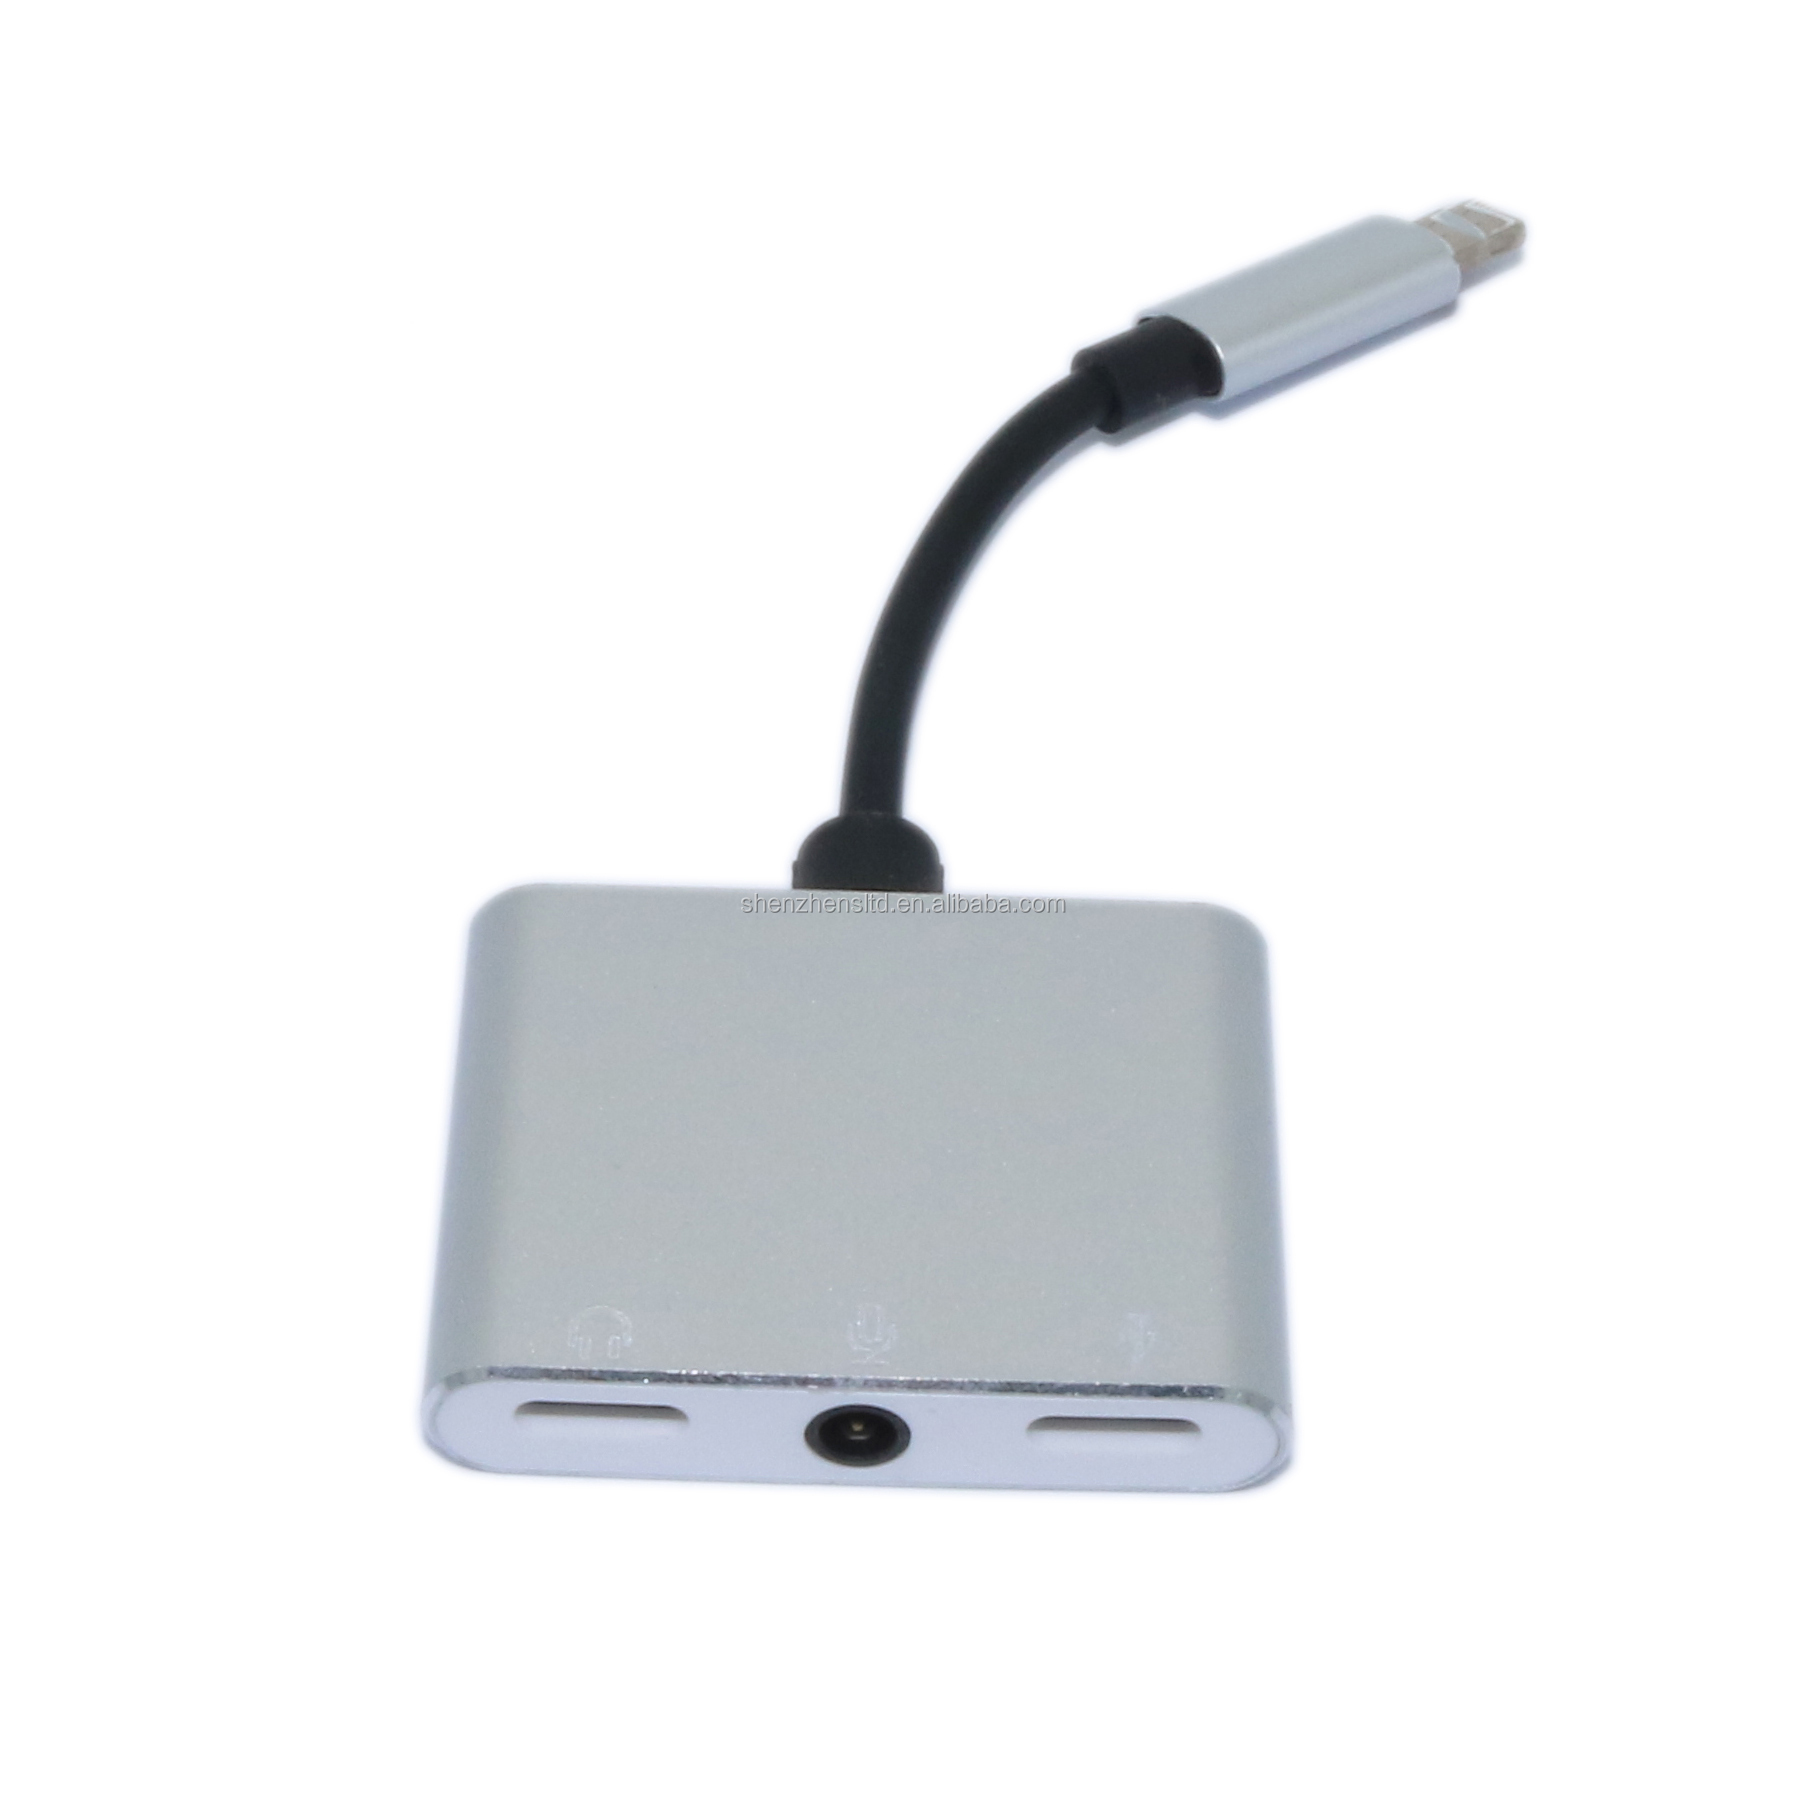 Hot Selling 2 in 1 to 3.5mm audio cable and Charge Splitter for i <strong>Phone</strong> with 3.5mm DC call function